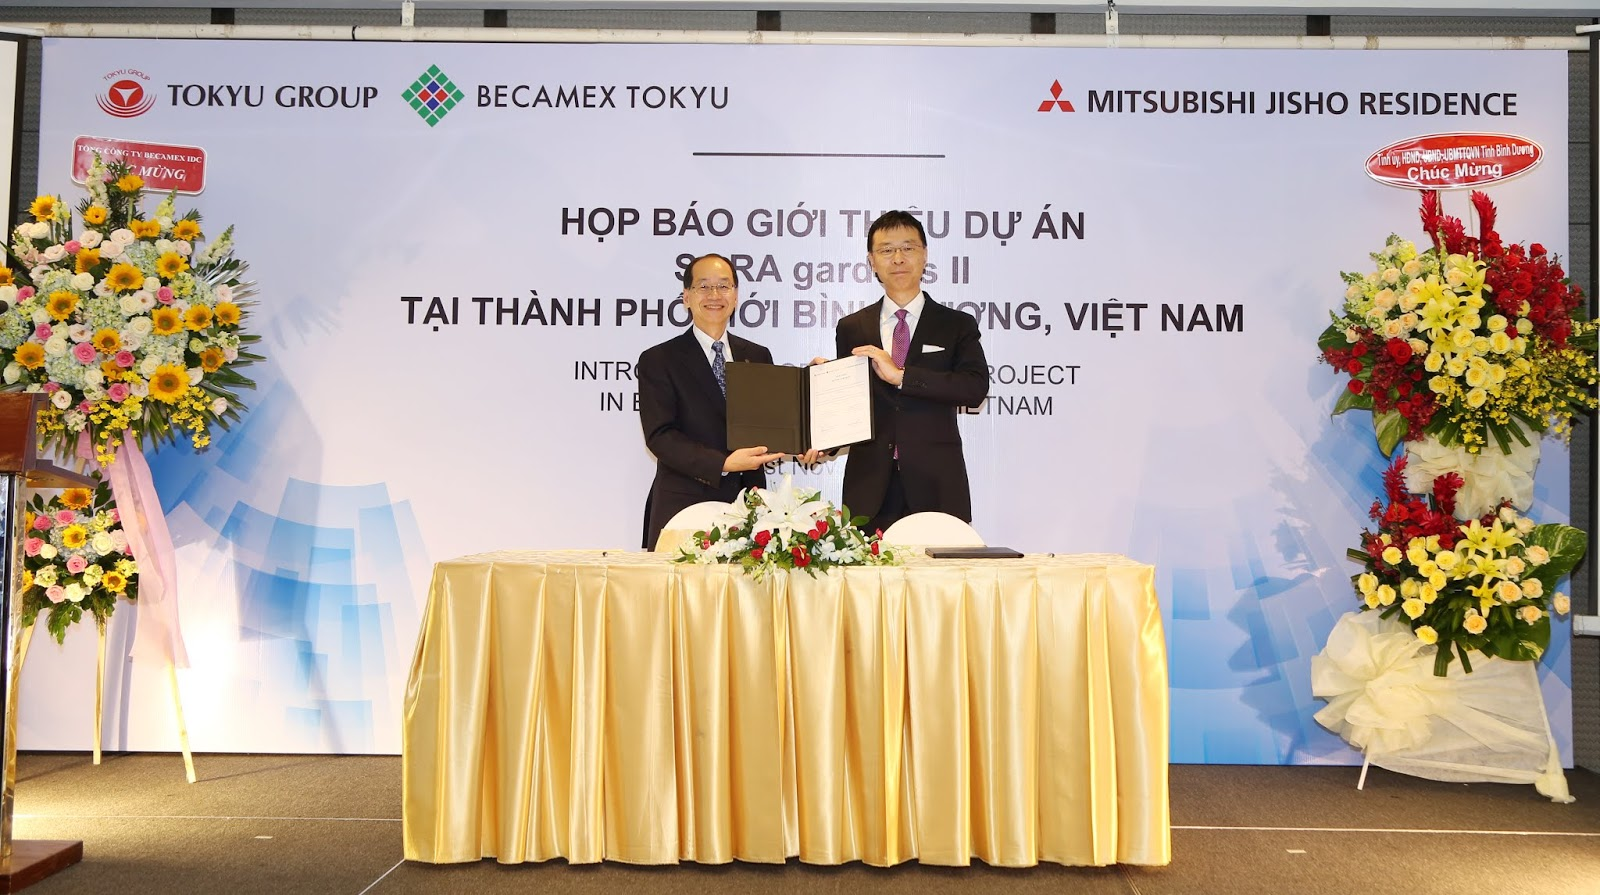 ESTABLISHMENT OF JOINT VENTURE COMPANY BETWEEN TOKYU GROUP AND MITSUBISHI ESTATE GROUP IN BINH DUONG PROVINCE, VIETNAM